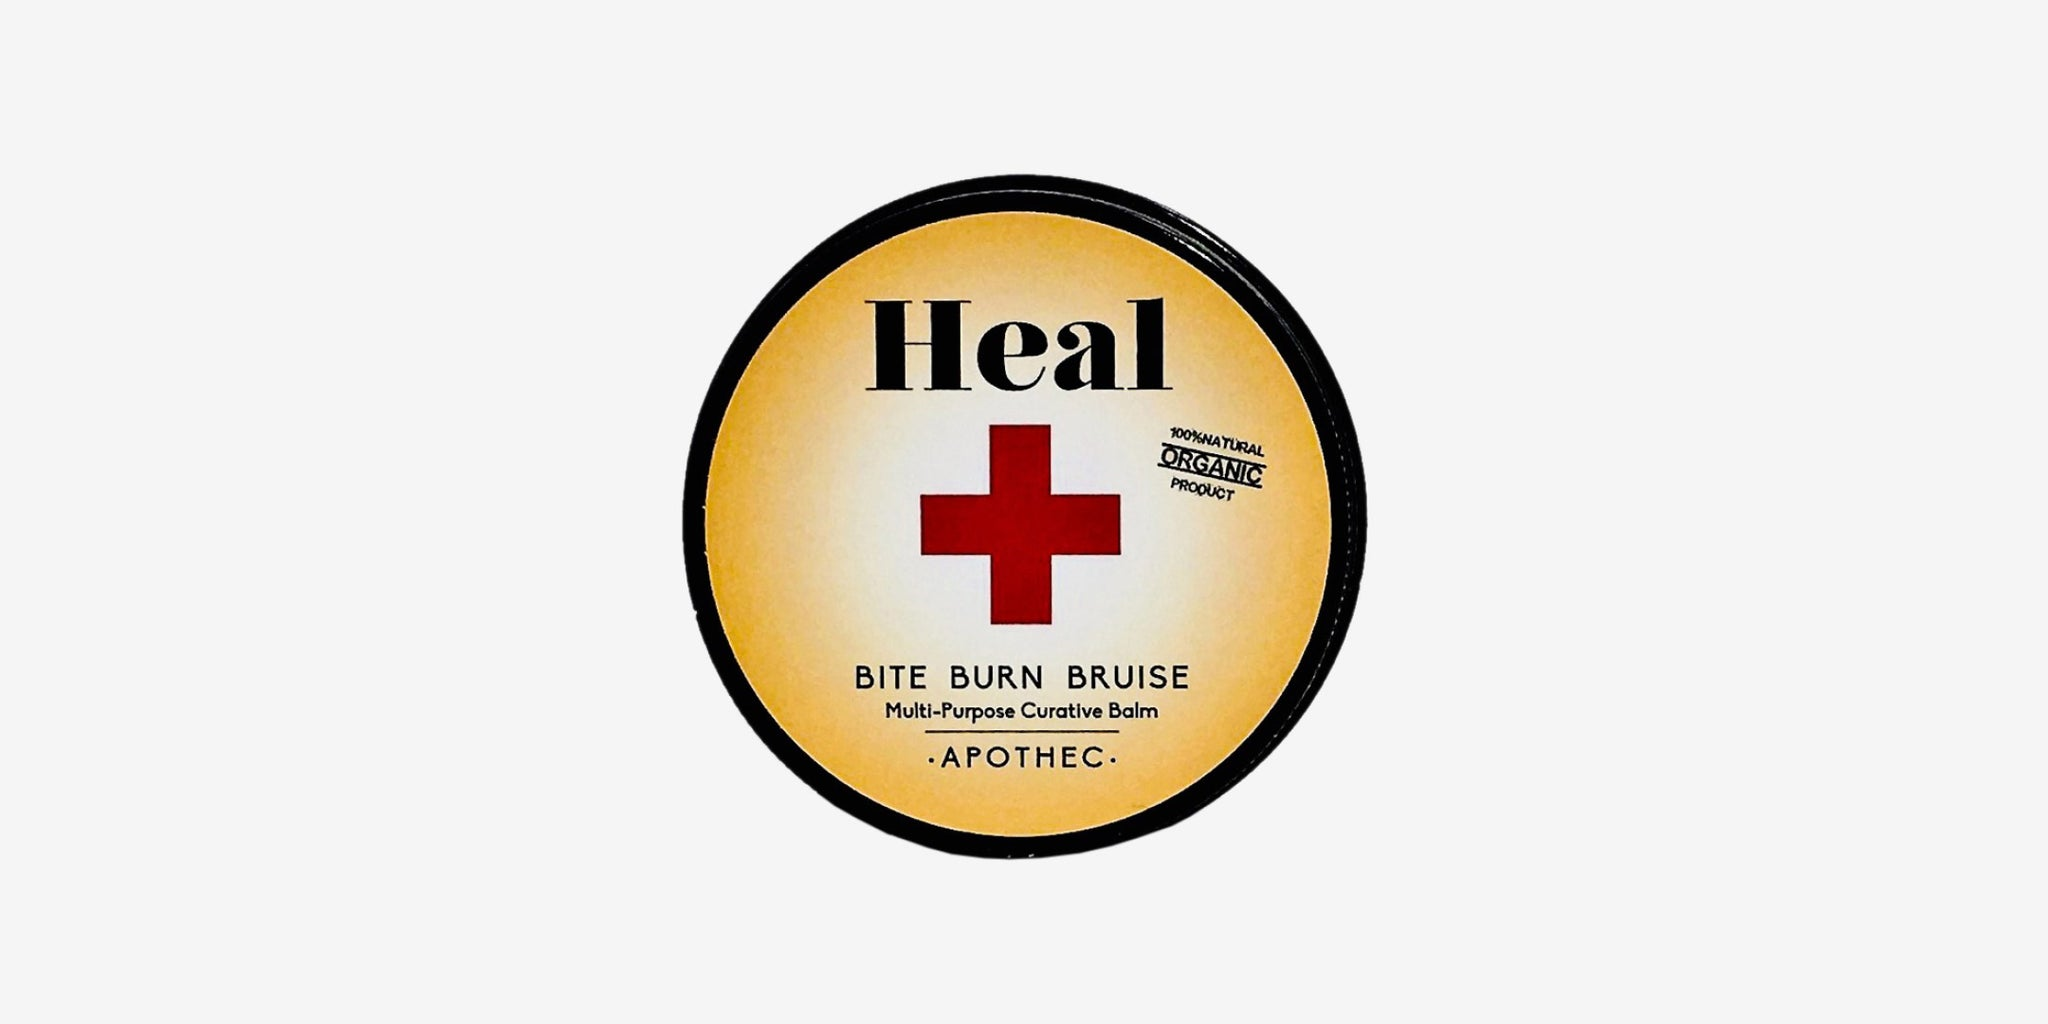 Heal Multi-Purpose Curative Balm